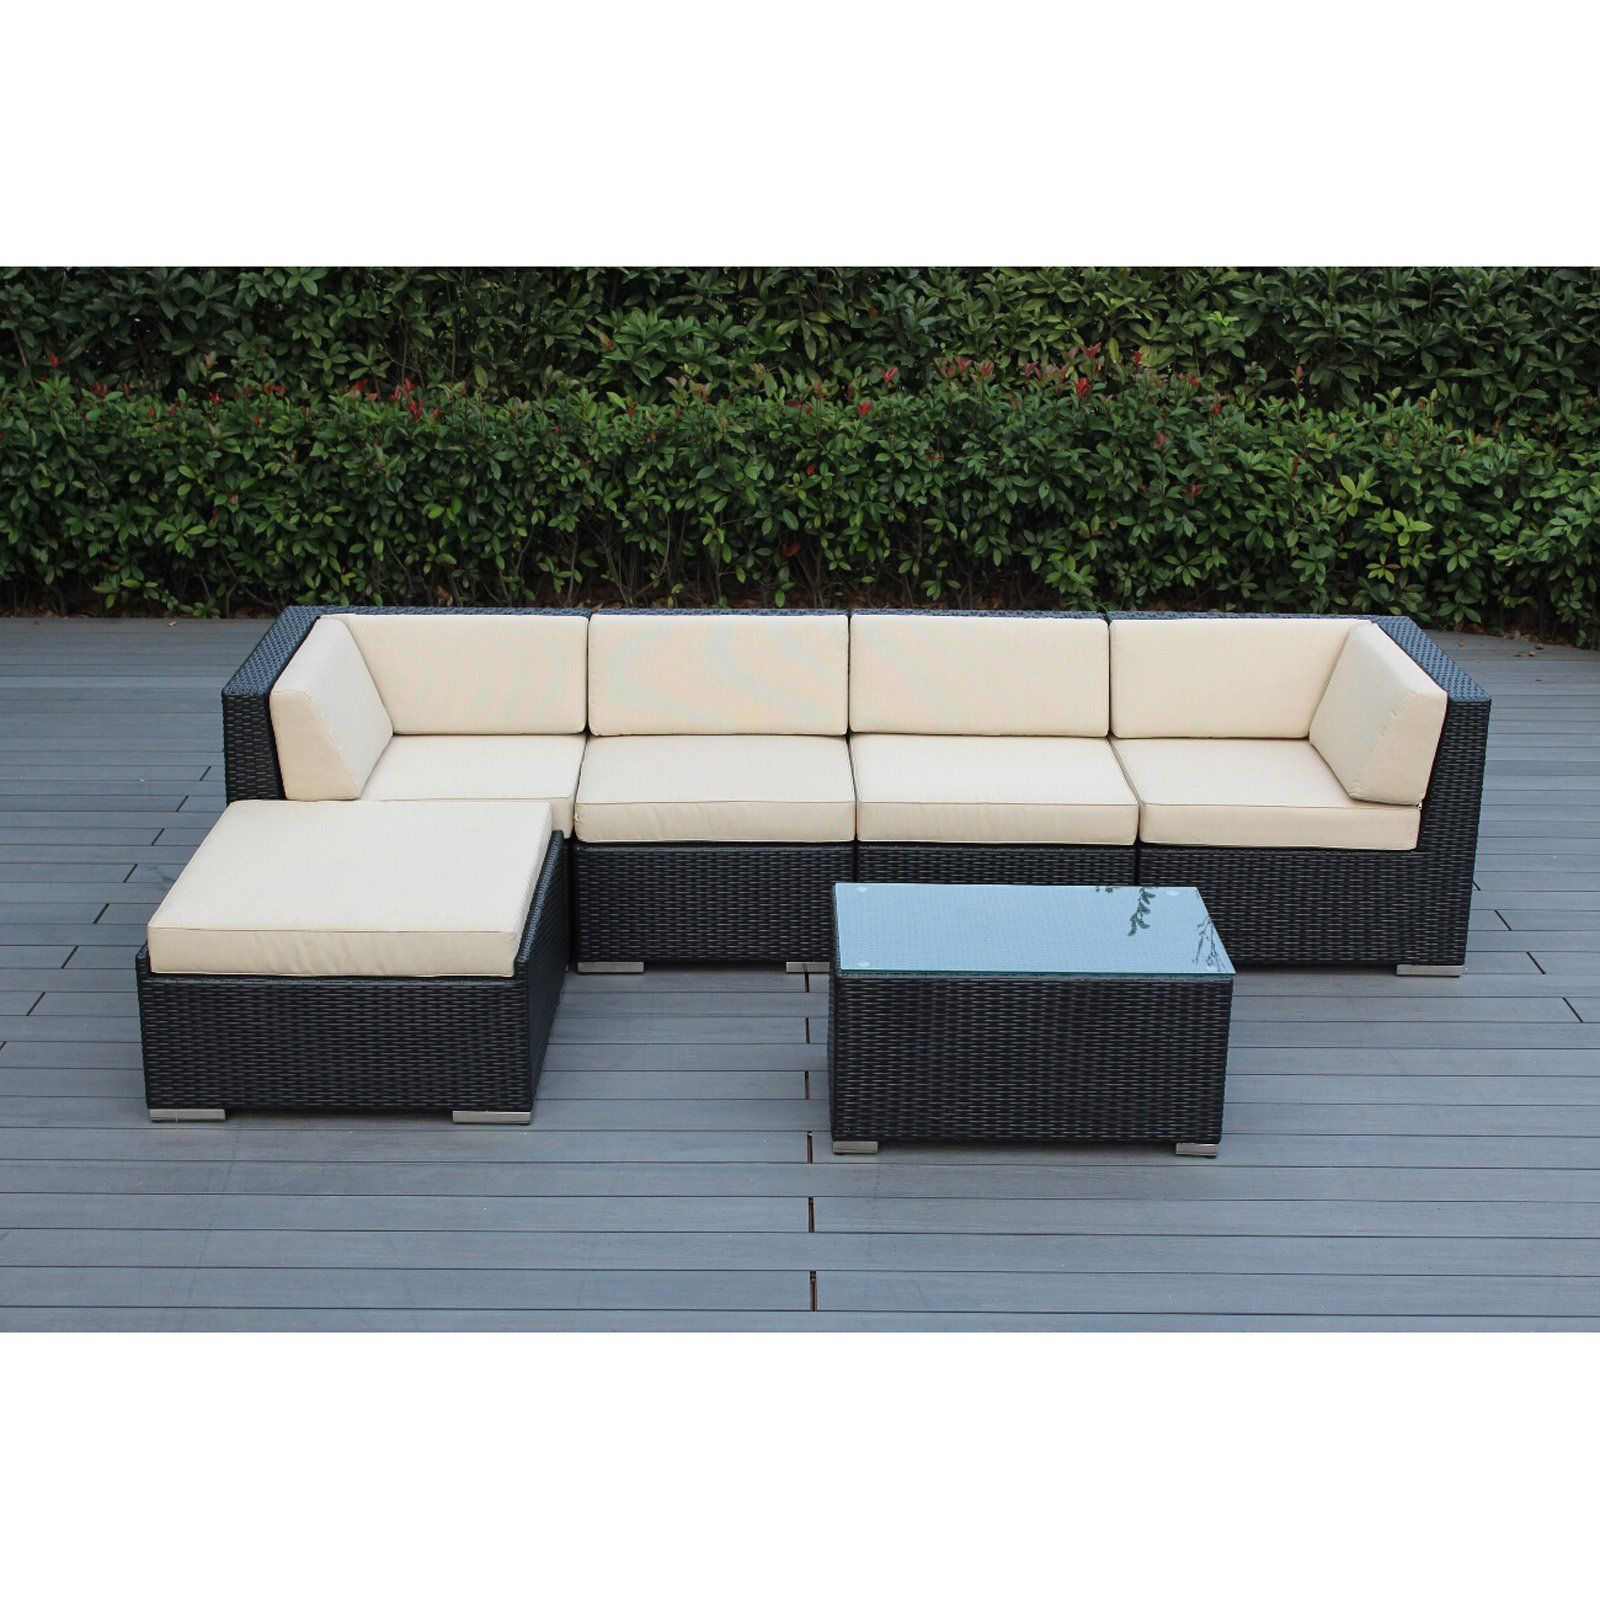 Outdoor Ohana All Weather Wicker 6 Piece Sectional Patio